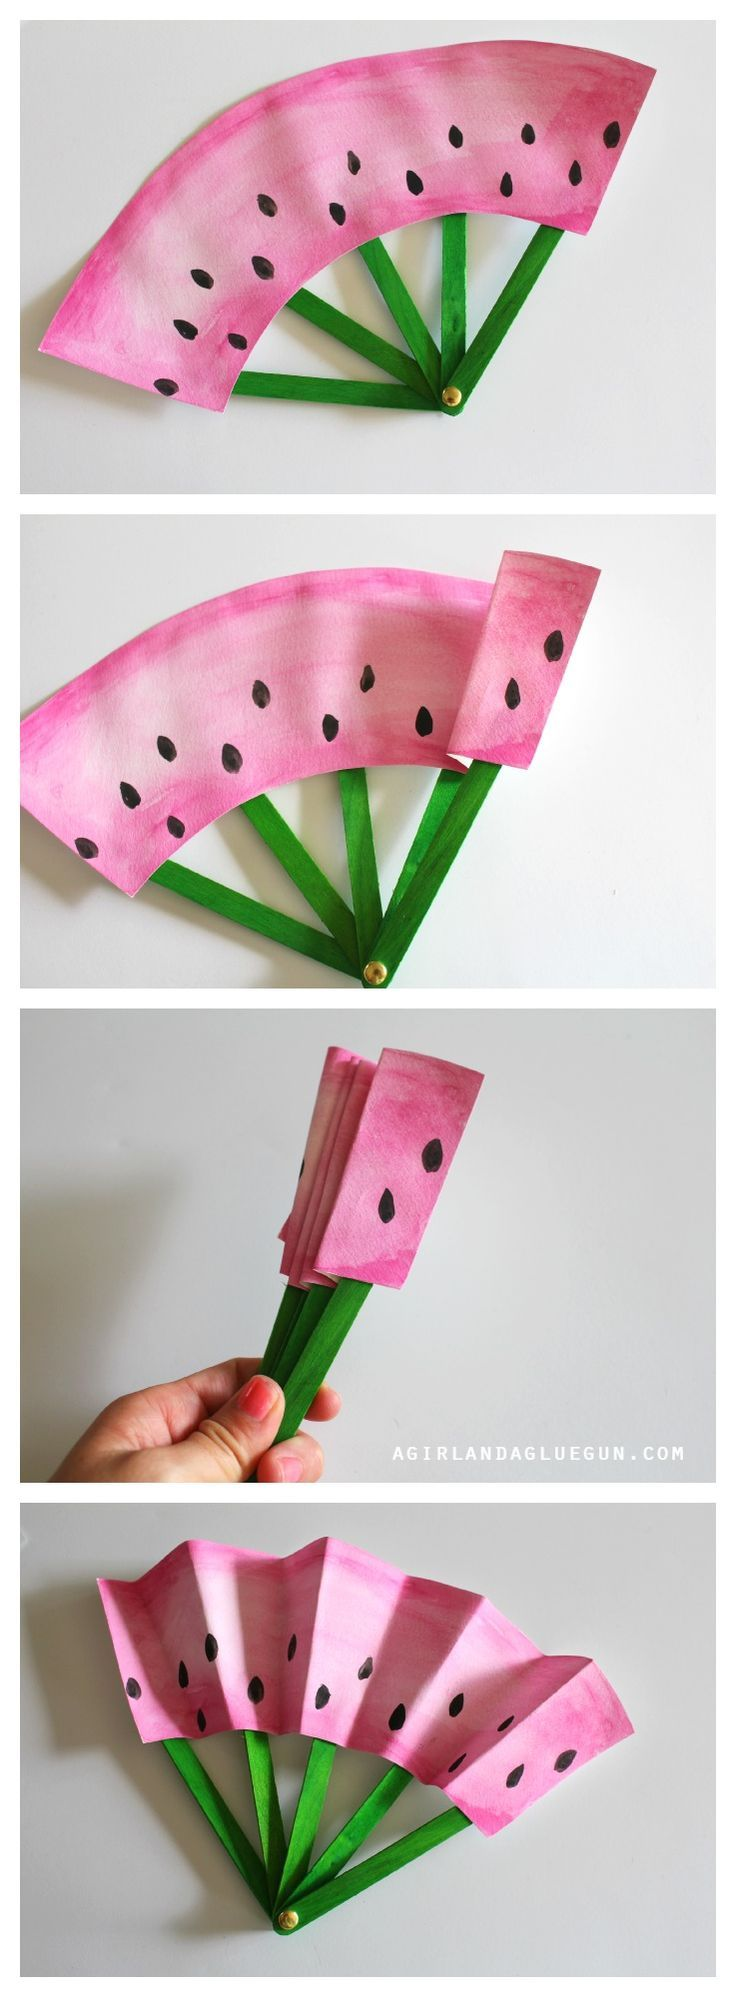 Ruby s rainbow room inspiration for kids bedroom decor at huggies - Create A Fun Diy Fruit Fan With This Adorable Kids Craft Which Is Perfect For Summer